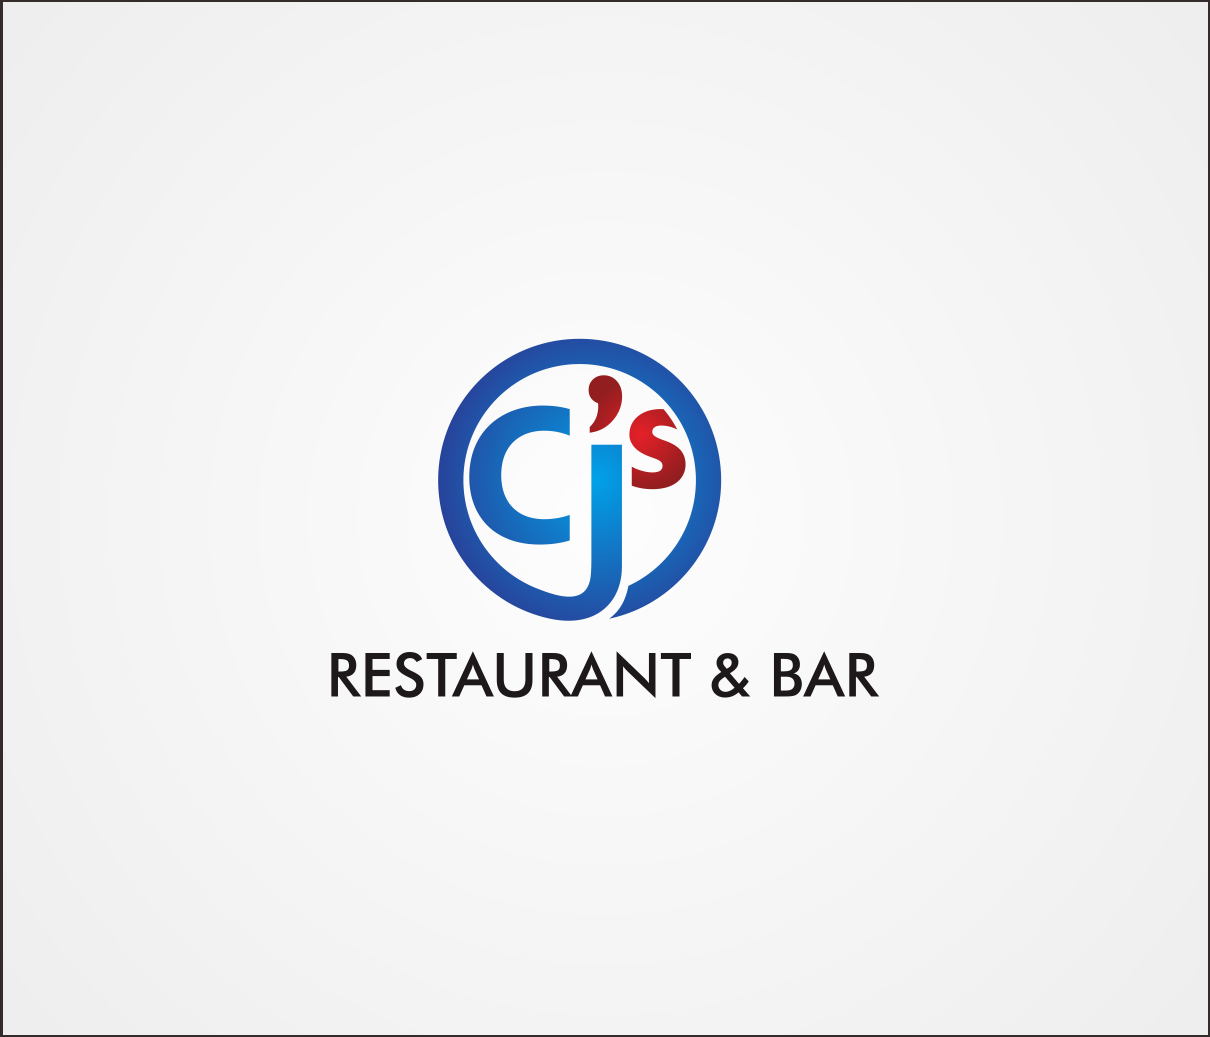 Logo Design by Armada Jamaluddin - Entry No. 123 in the Logo Design Contest Inspiring Logo Design for Cj's.